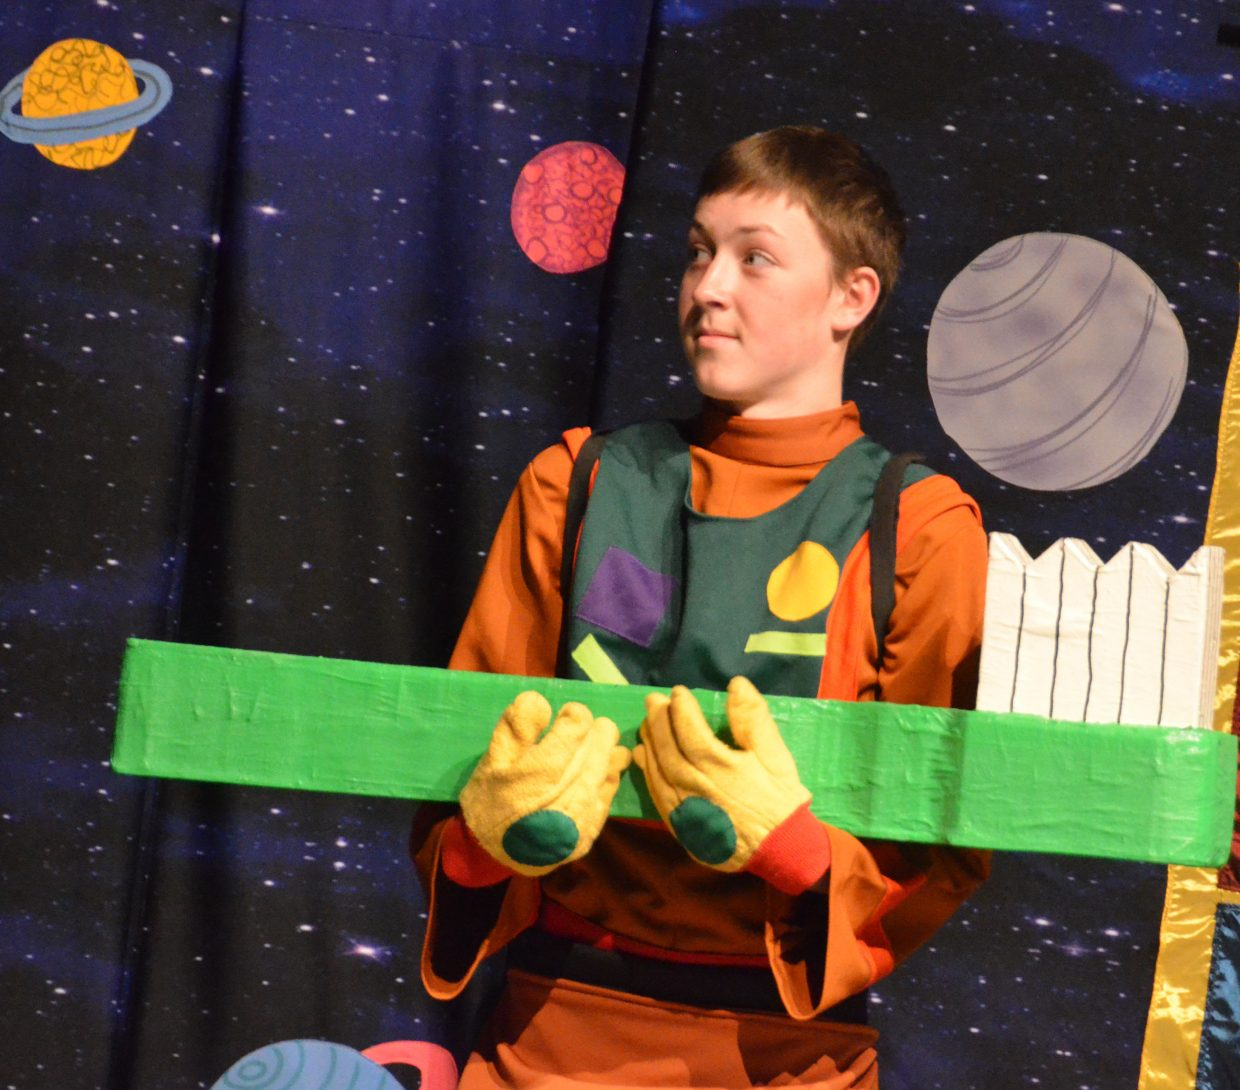 Gulliver (Alexander Nichols) is unsure what to make of an oversized toothbrush in Missoula Children's Theatre's